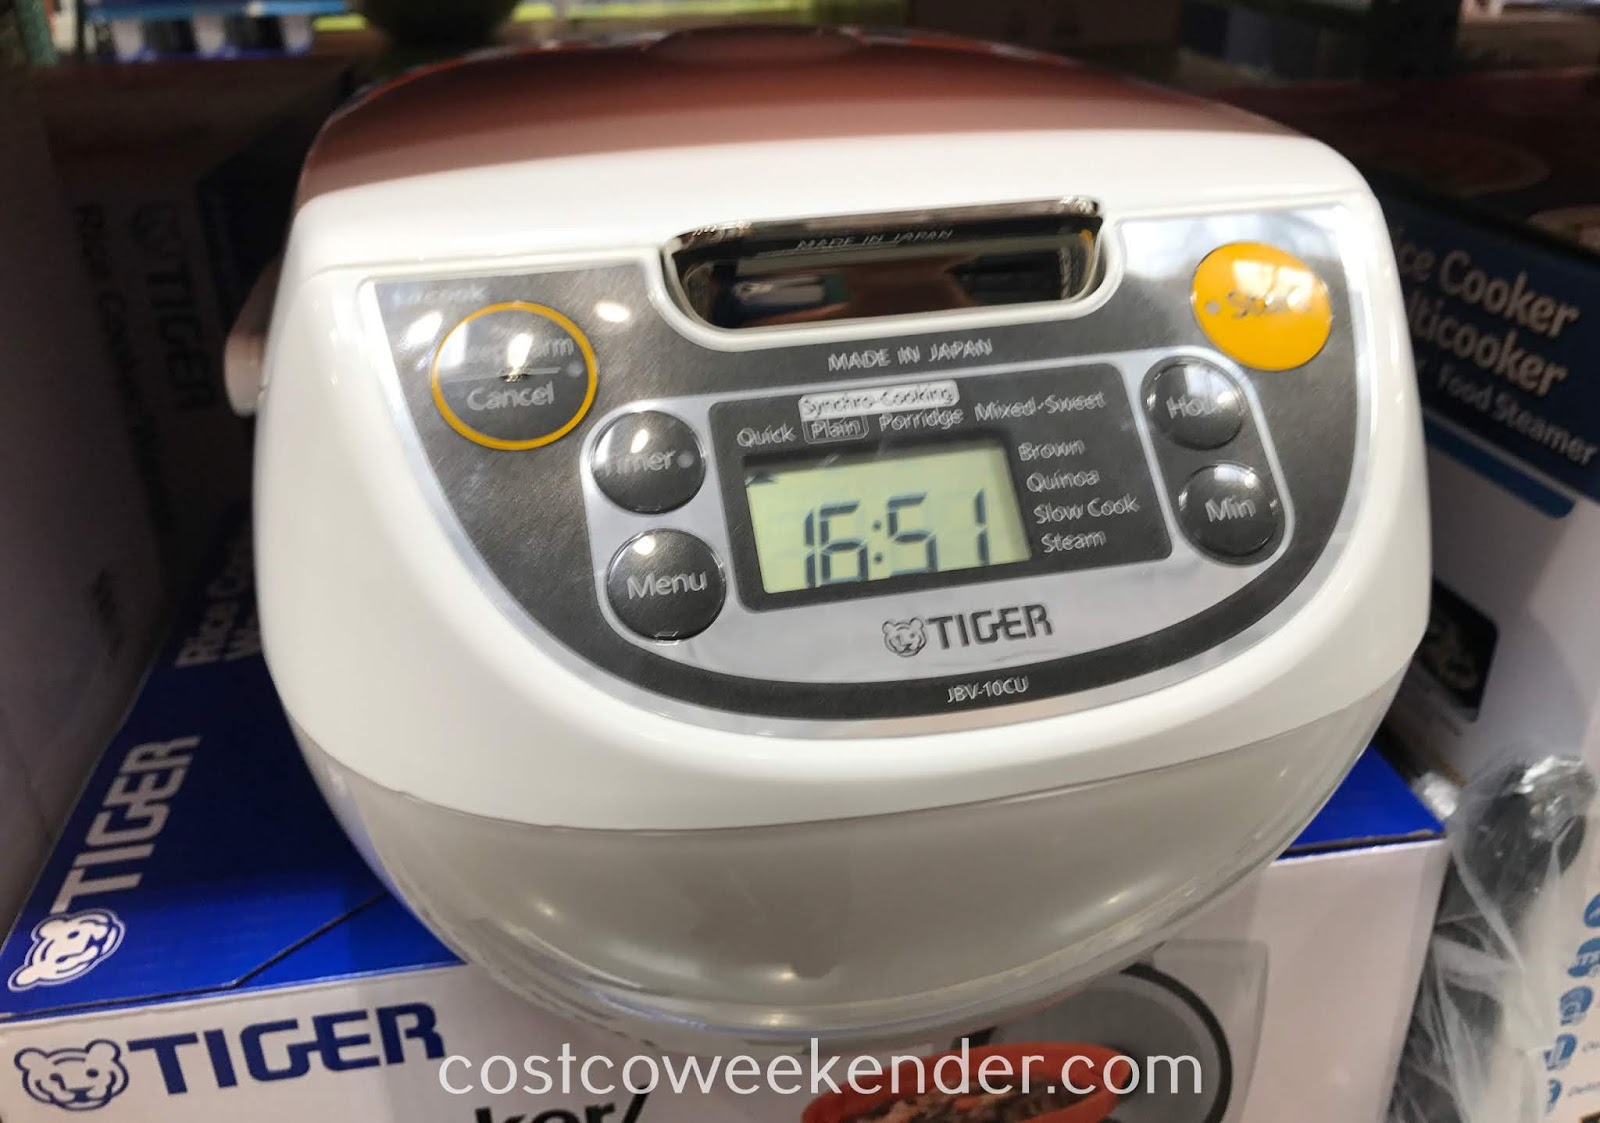 Costco 1198313 - Tiger Rice Cooker/Warmer can cook white/brown rice and has features to slow cook, steam, and warm